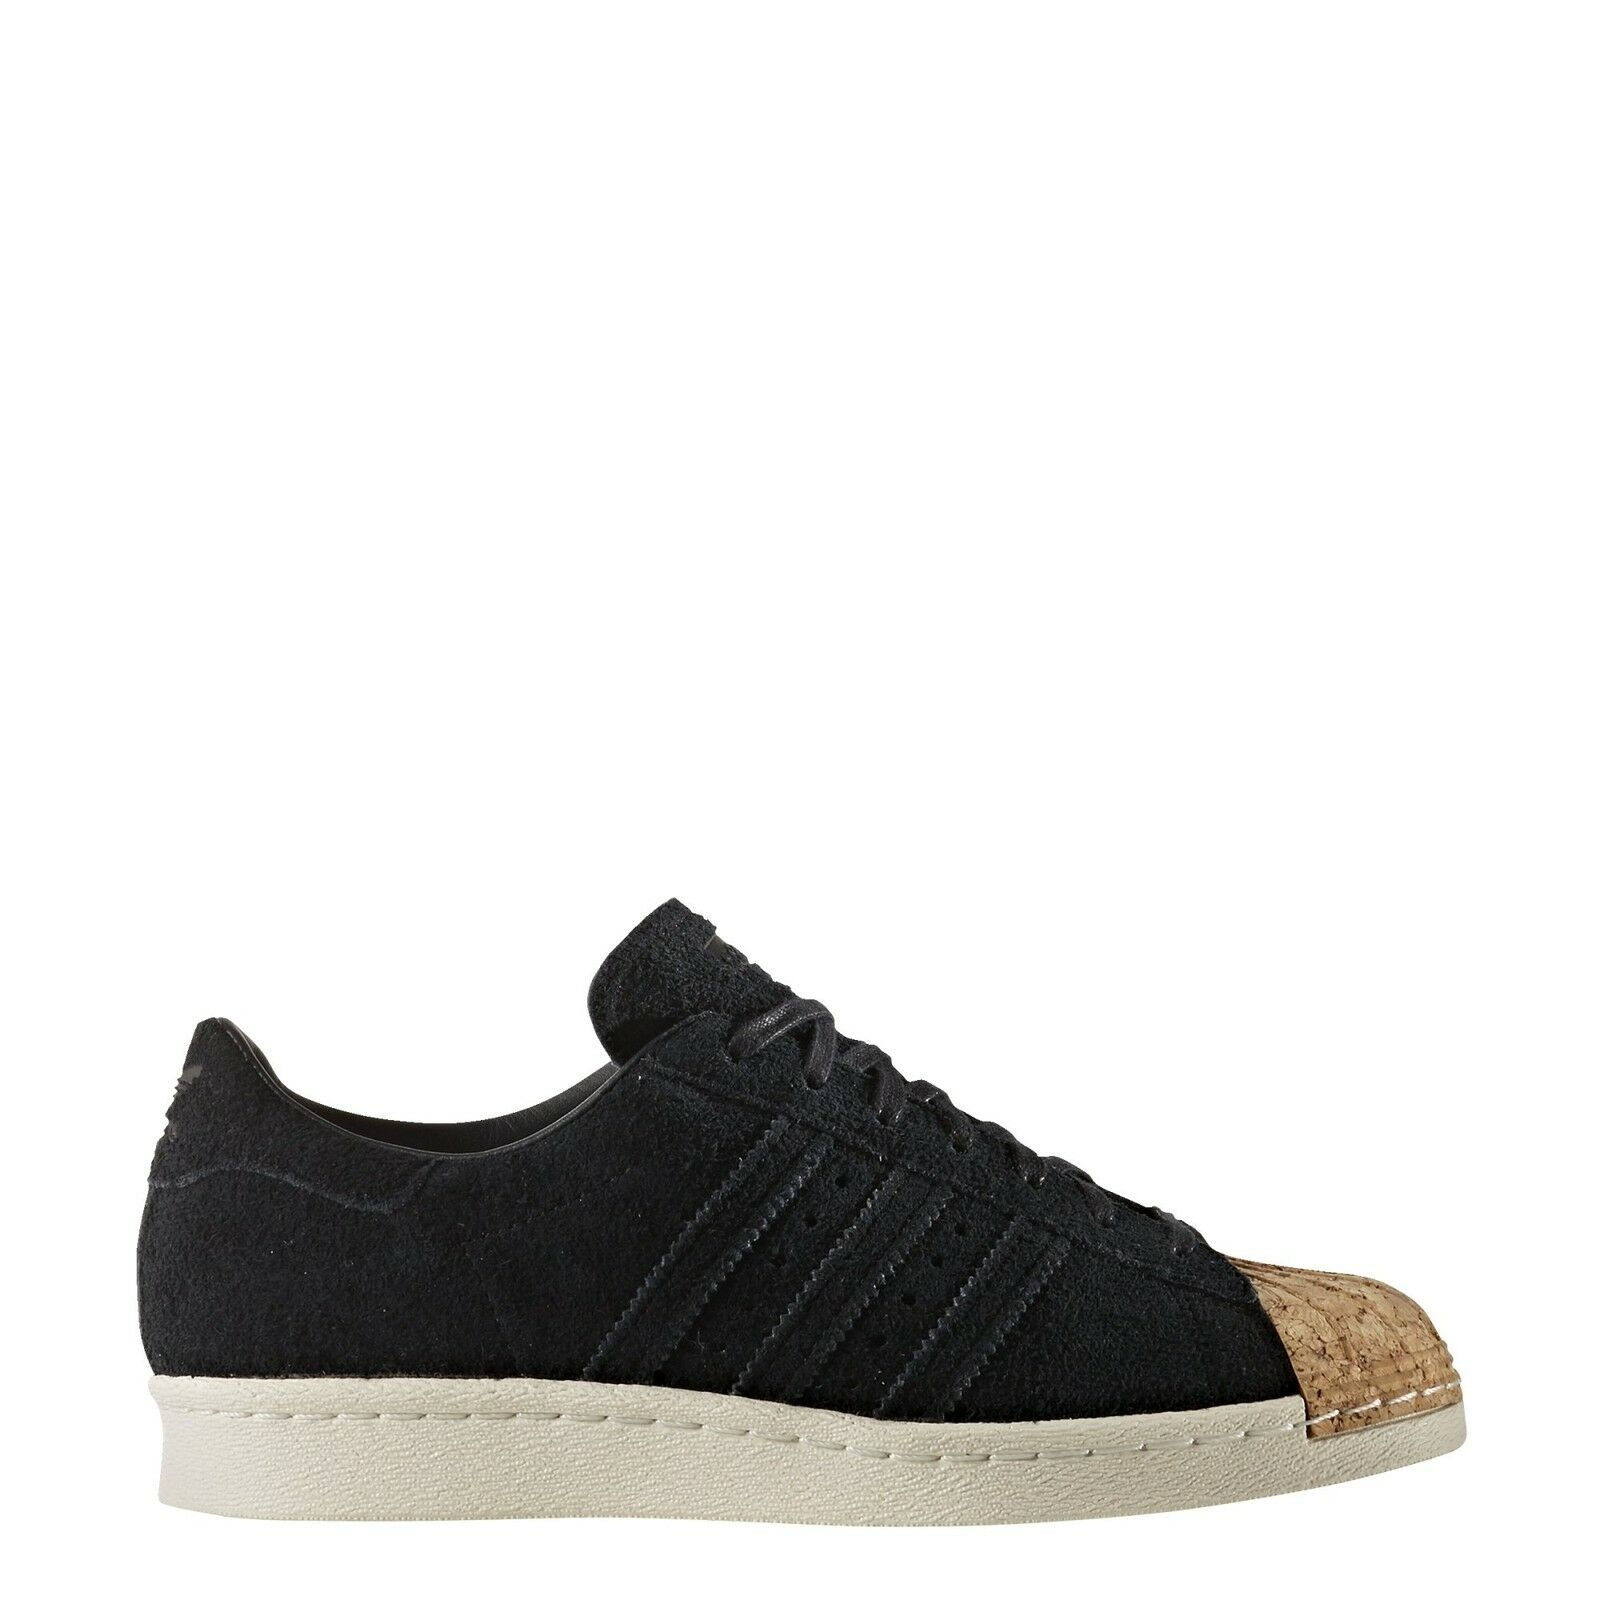 adidas Femme's chaussures Questar Ride Competition fonctionnement chaussures Femme's 5ffd58